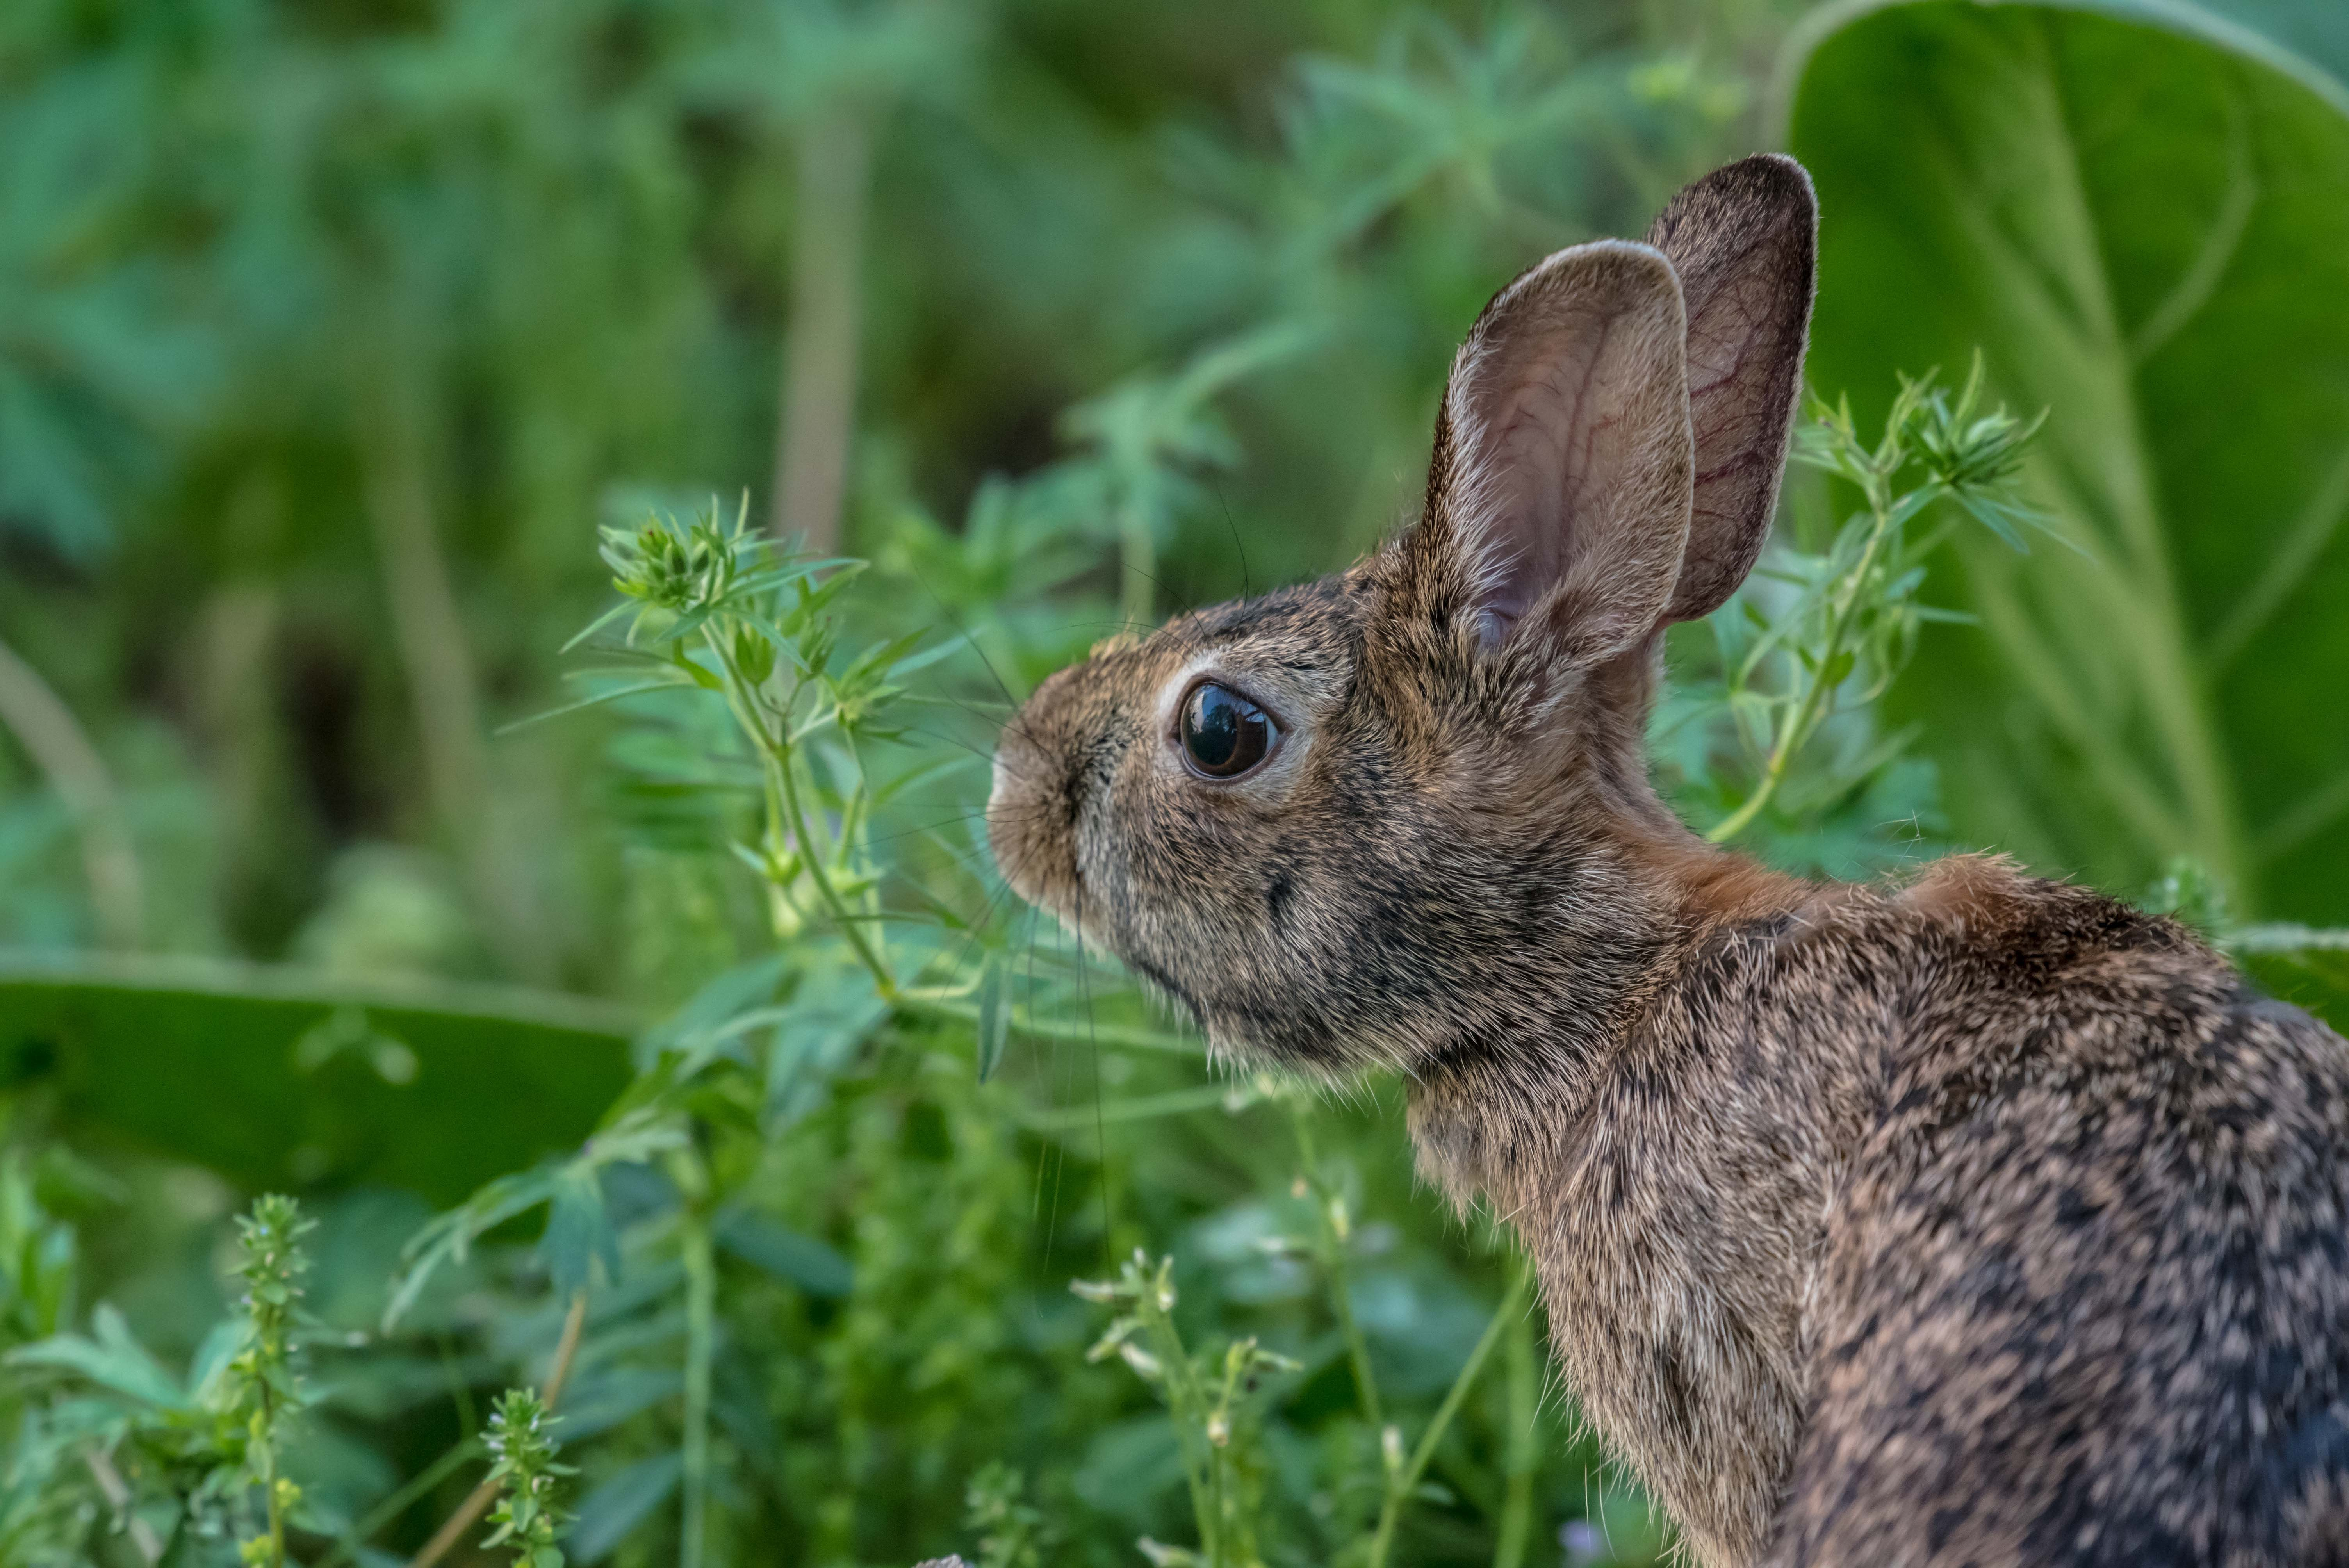 A profile of a brown rabbit with beady eyes against green foliage